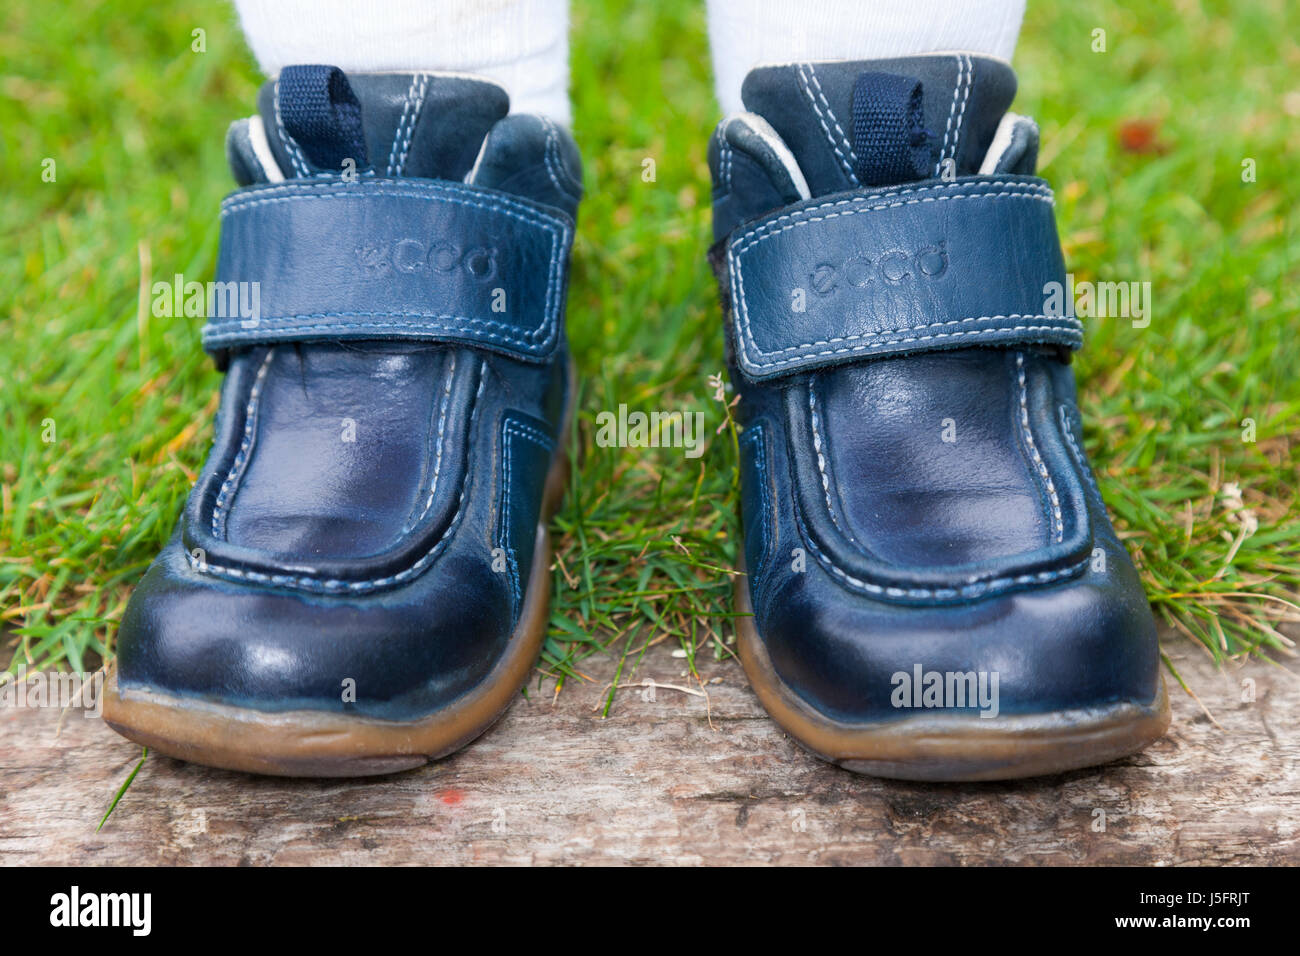 Childs / kid / young kids / children 's shoes on the wrong feet, so putting the right shoe on the left foot - Stock Image